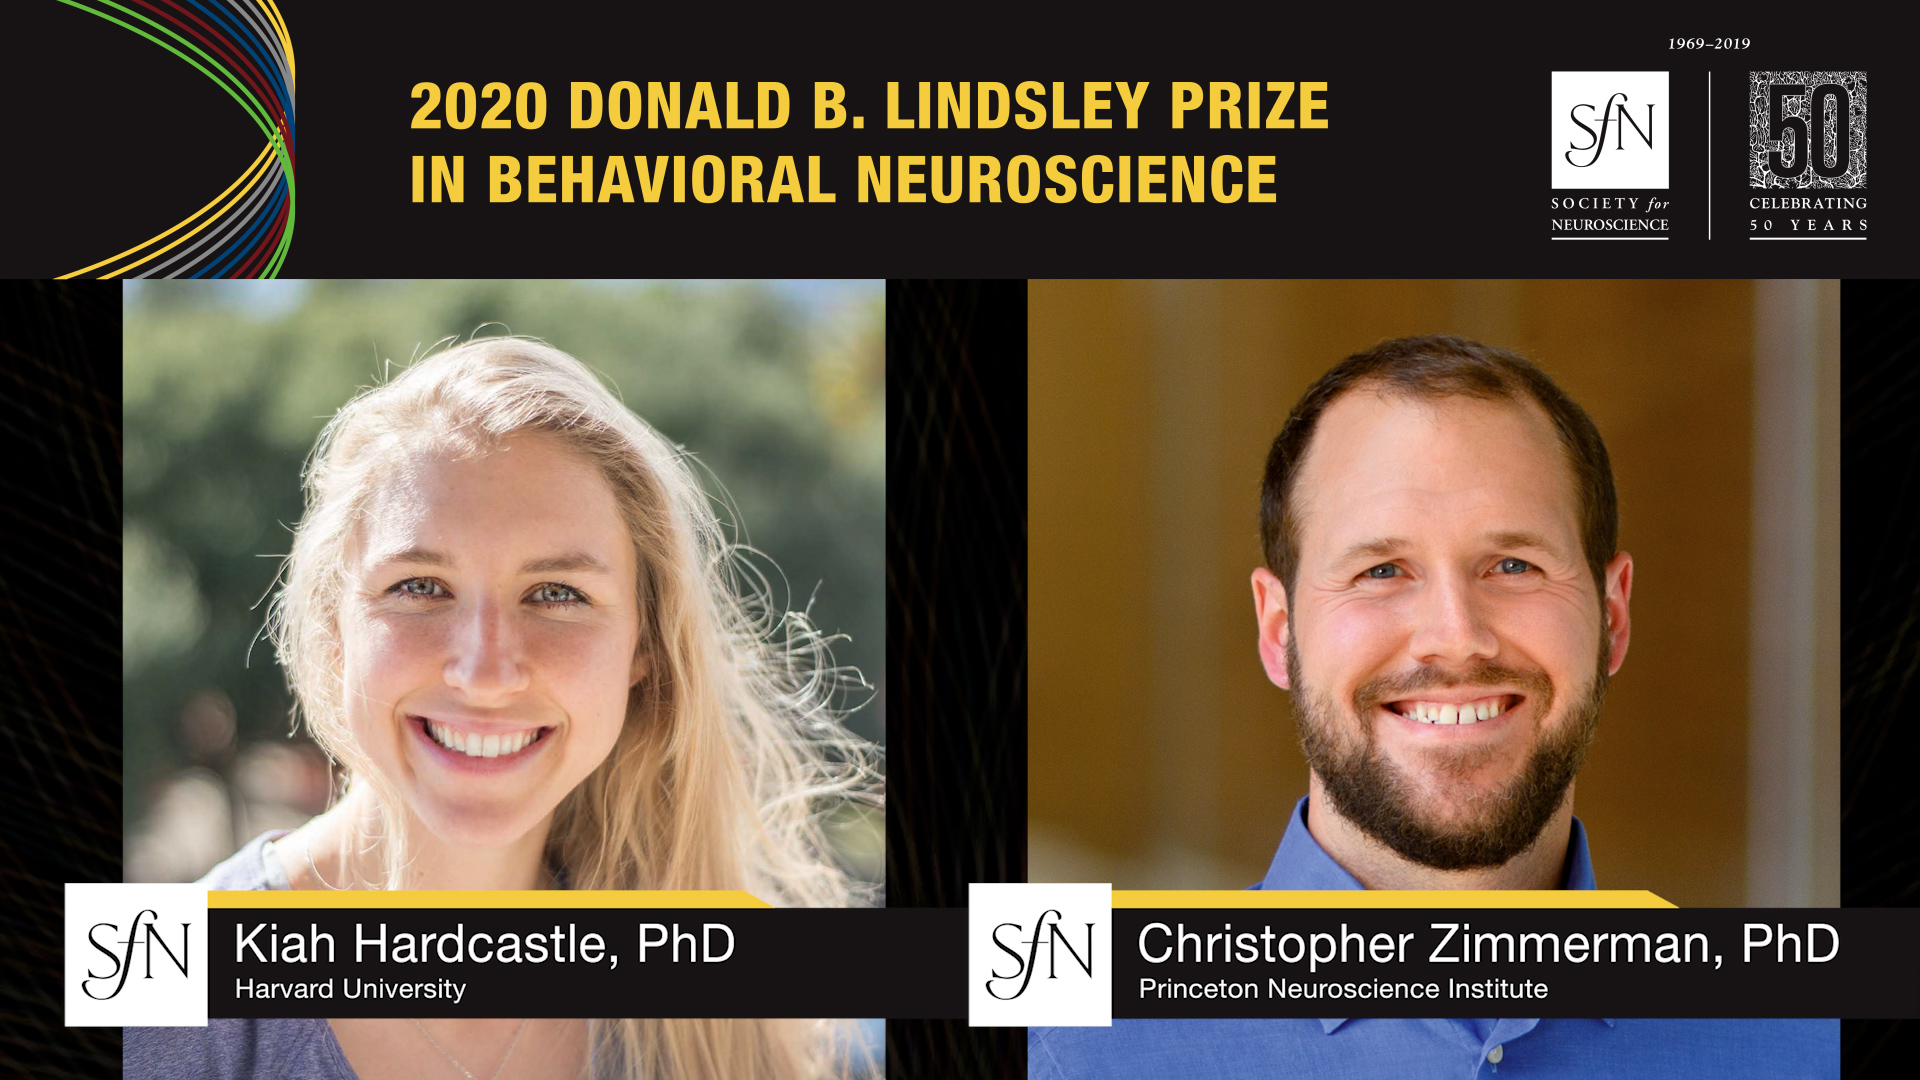 2020 Donald B. Lindsley Prize In Behavioral Neuroscience Award winners graphic, images of Kiah Hardcastle, PhD Harvard University and Christopher Zimmerman, PhD Princeton Neuroscience Institute